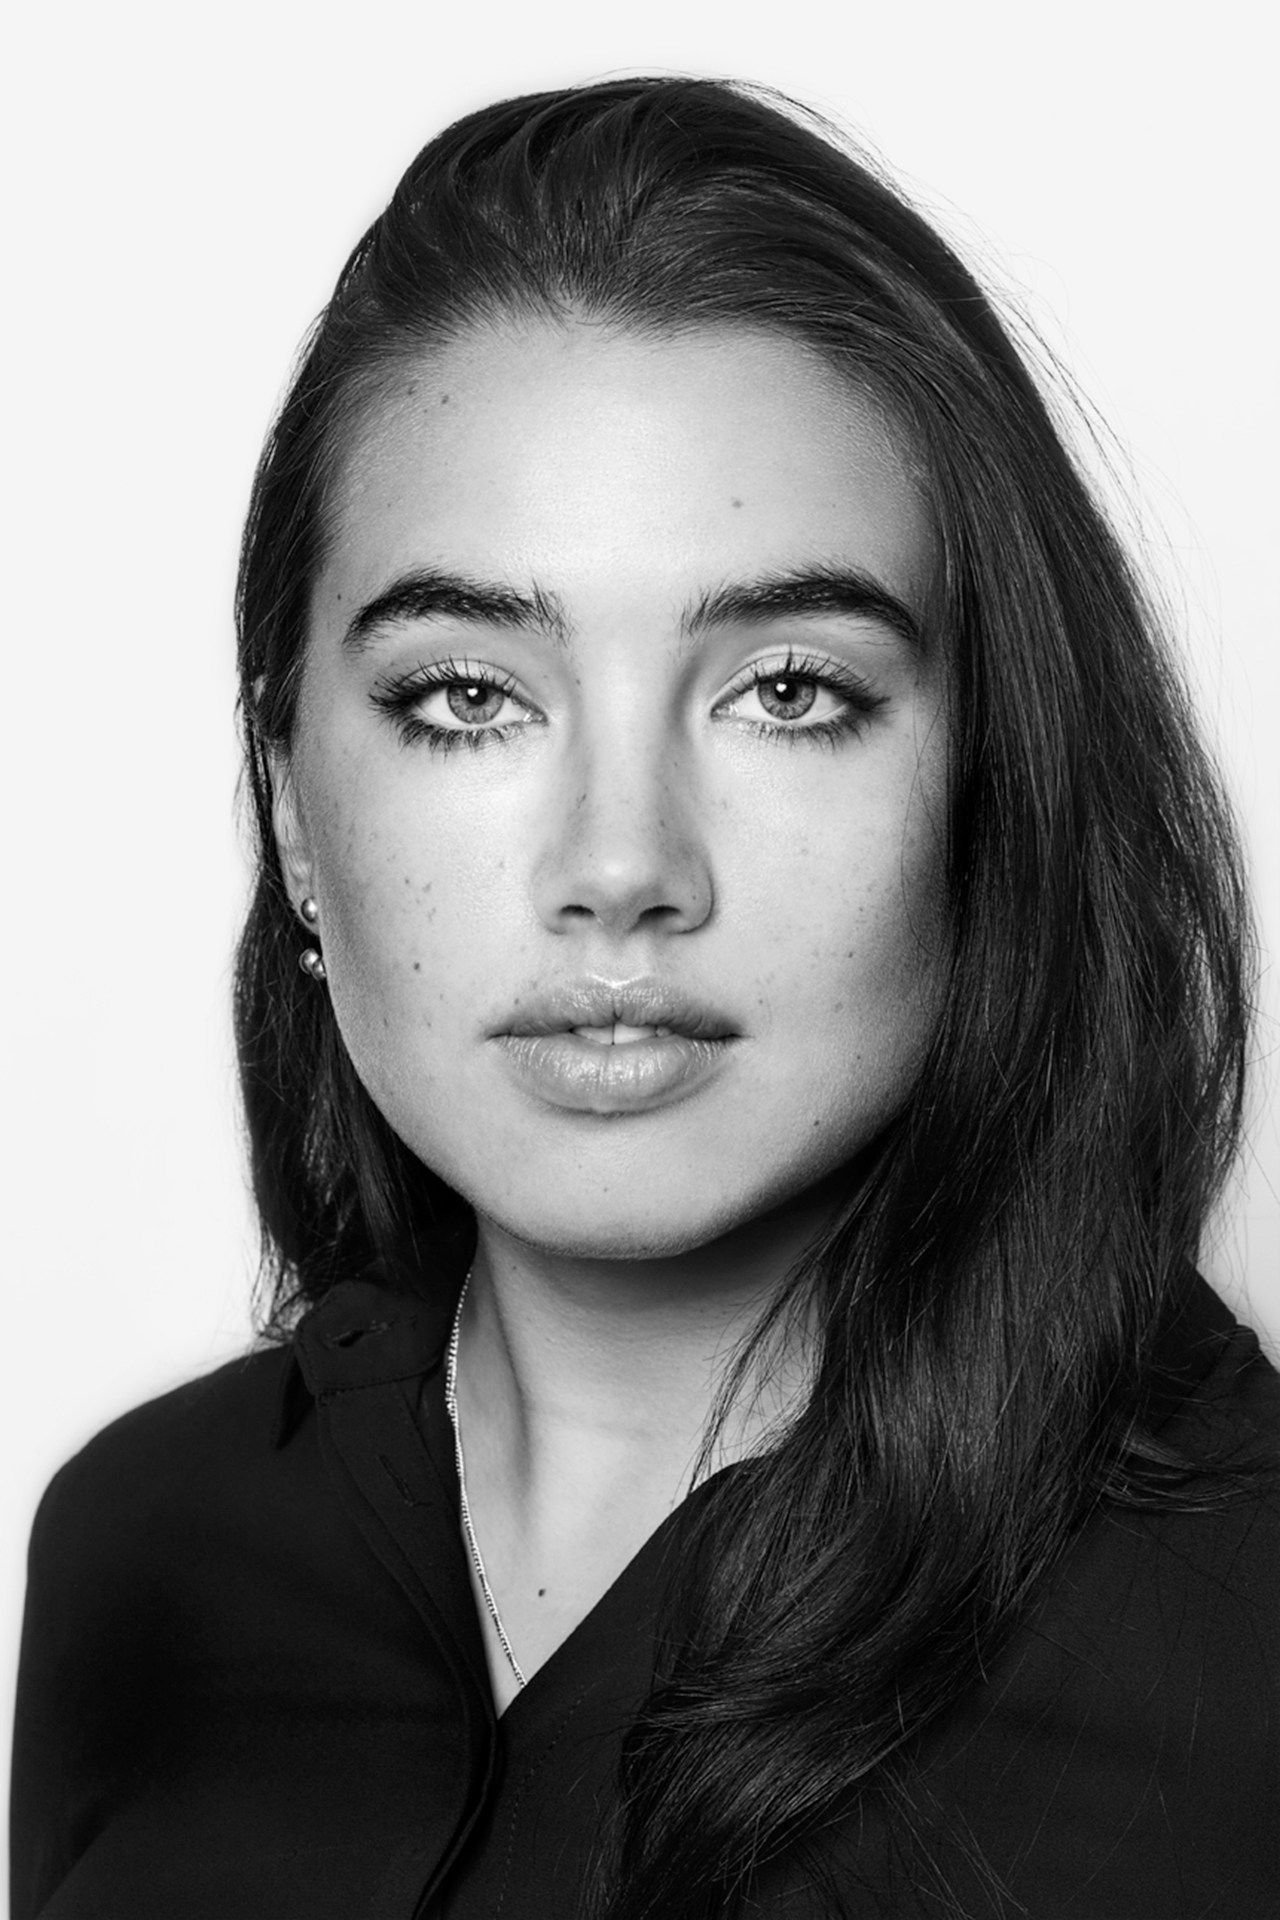 Who Is Isamaya Ffrench? Uk makeup, Model face, Ysl beaute